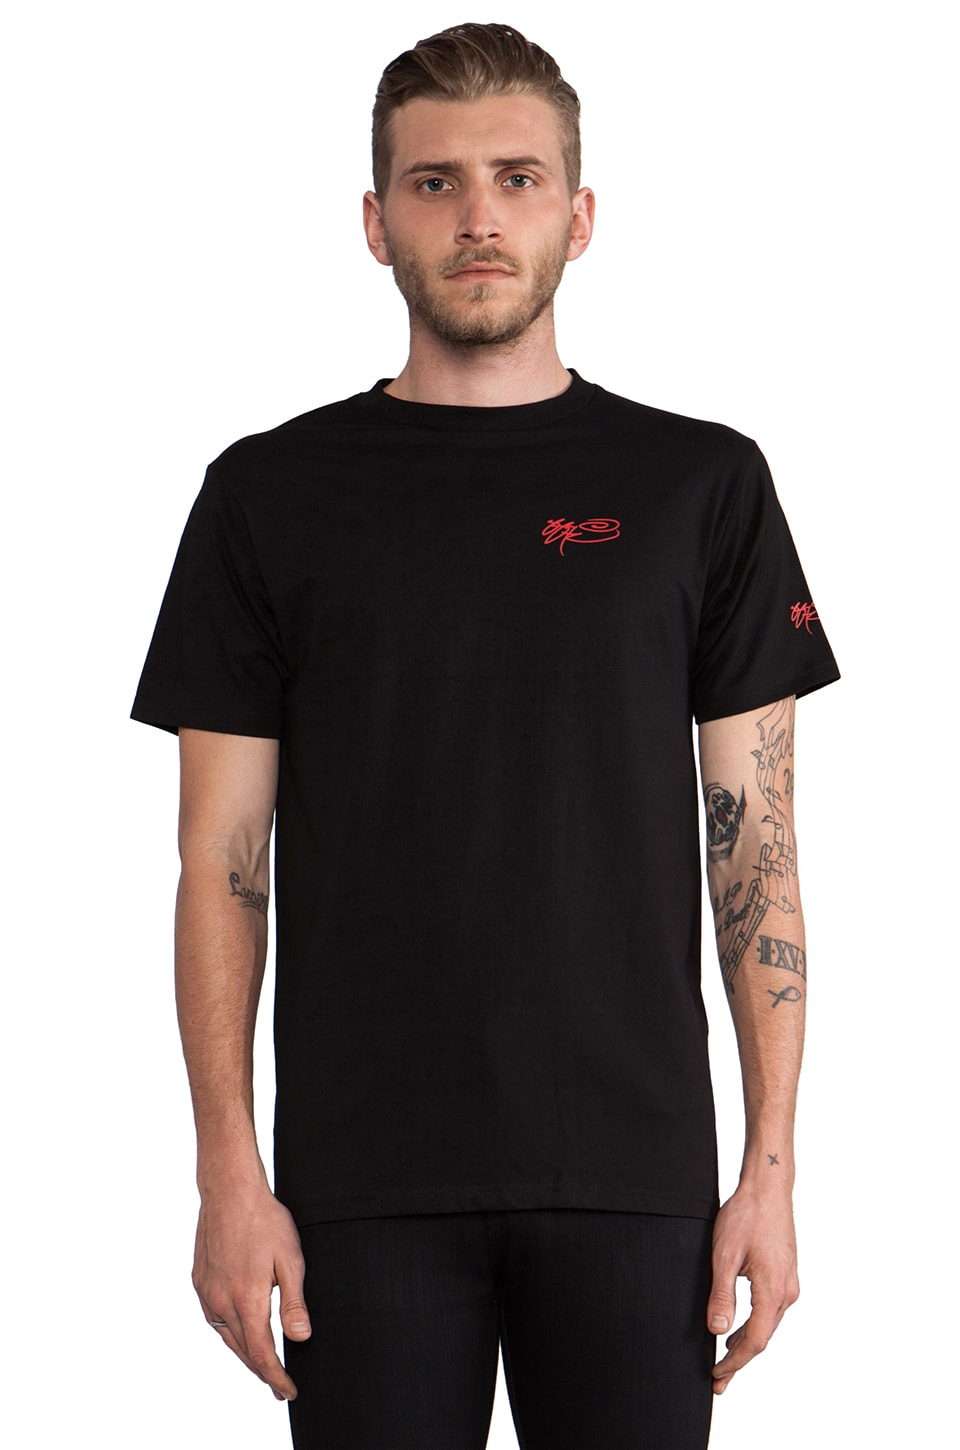 SSUR Capitalist Pig Tee in Black